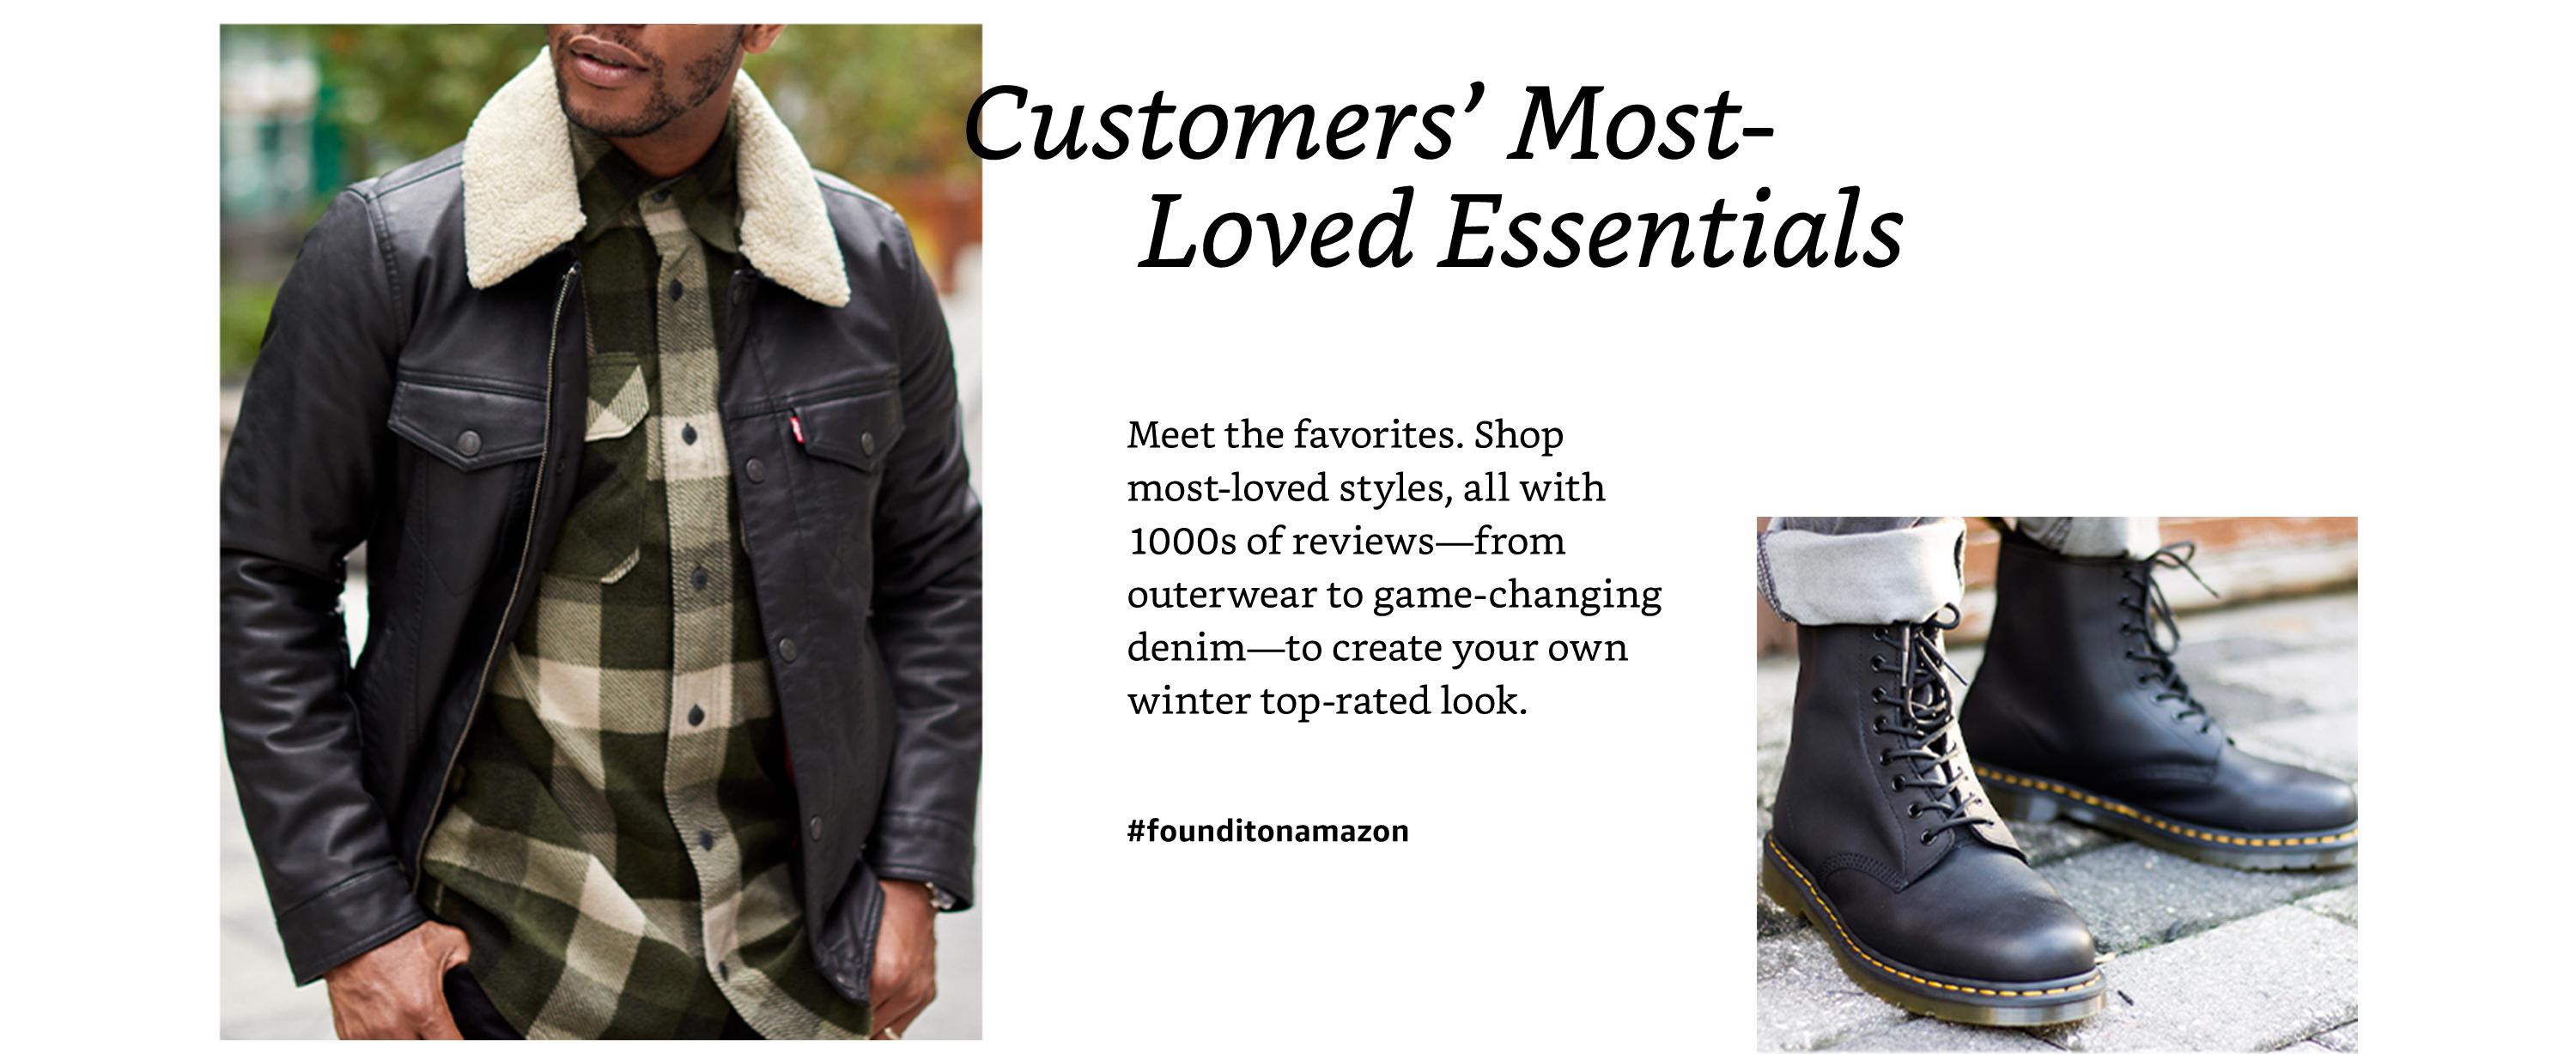 Customers' Most-Loved Essentials